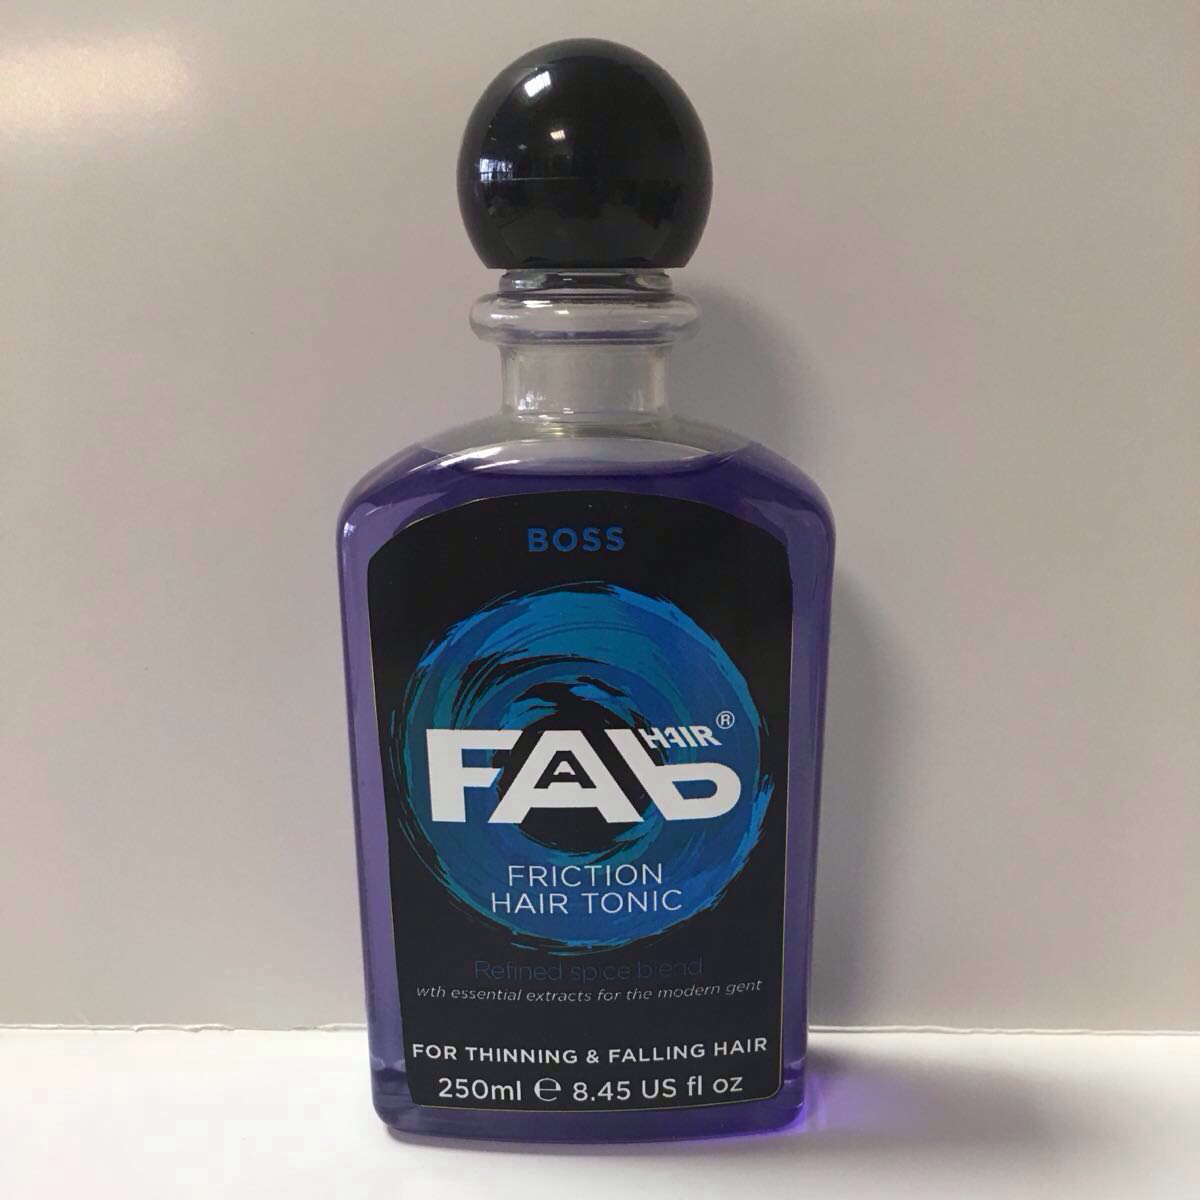 boss FAB hair friction tonic